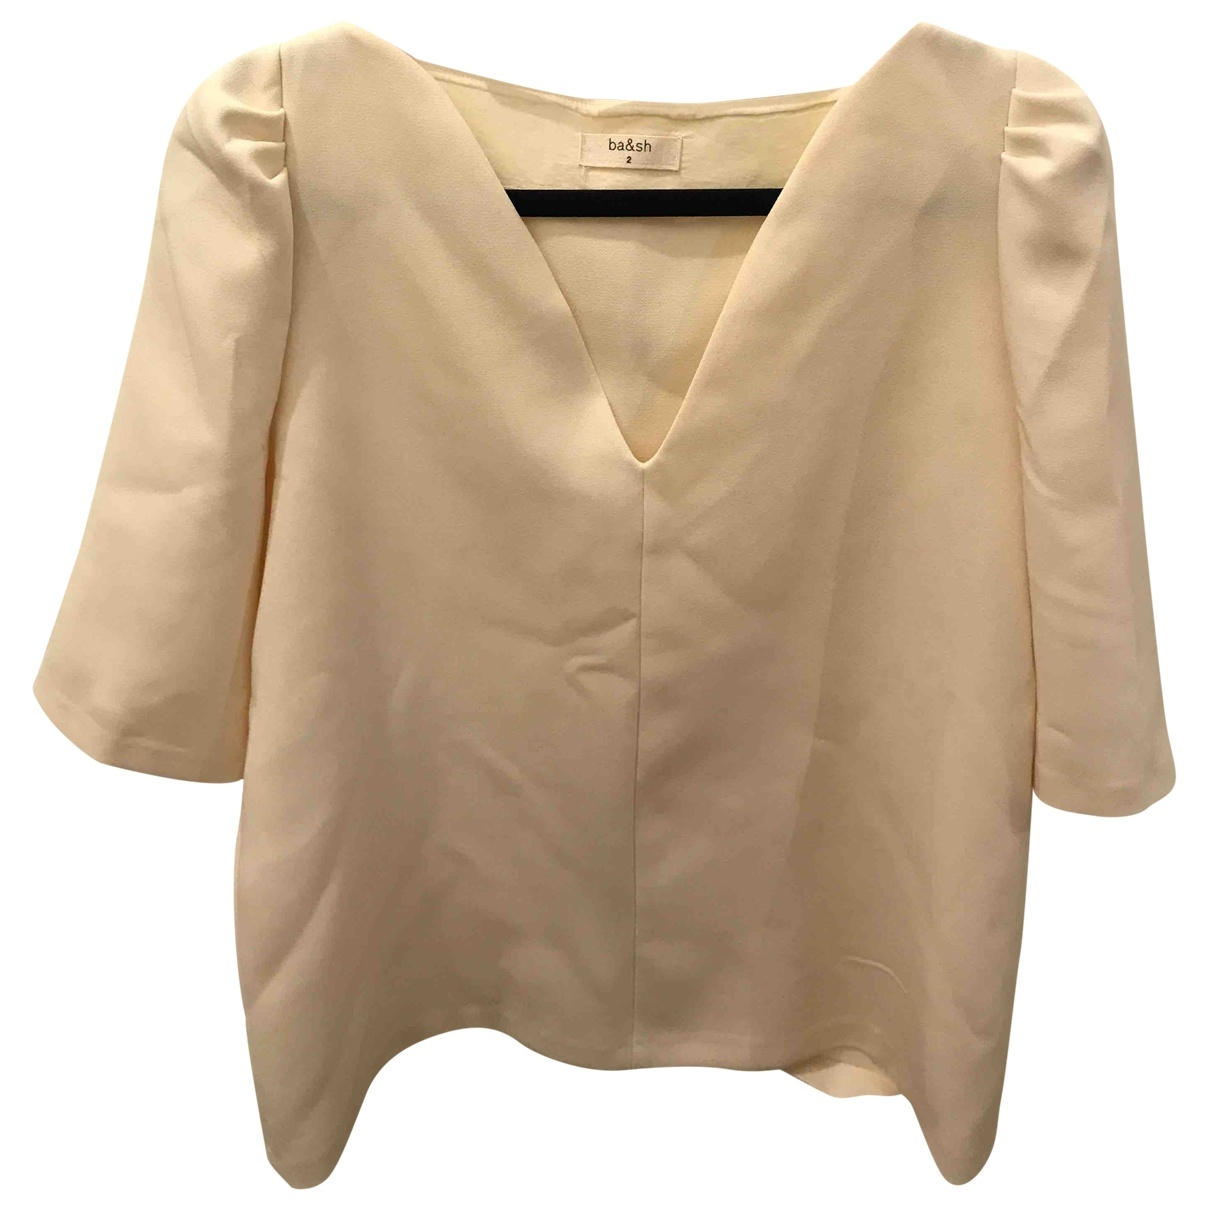 Ba&sh \N Ecru  top for Women 2 0-5